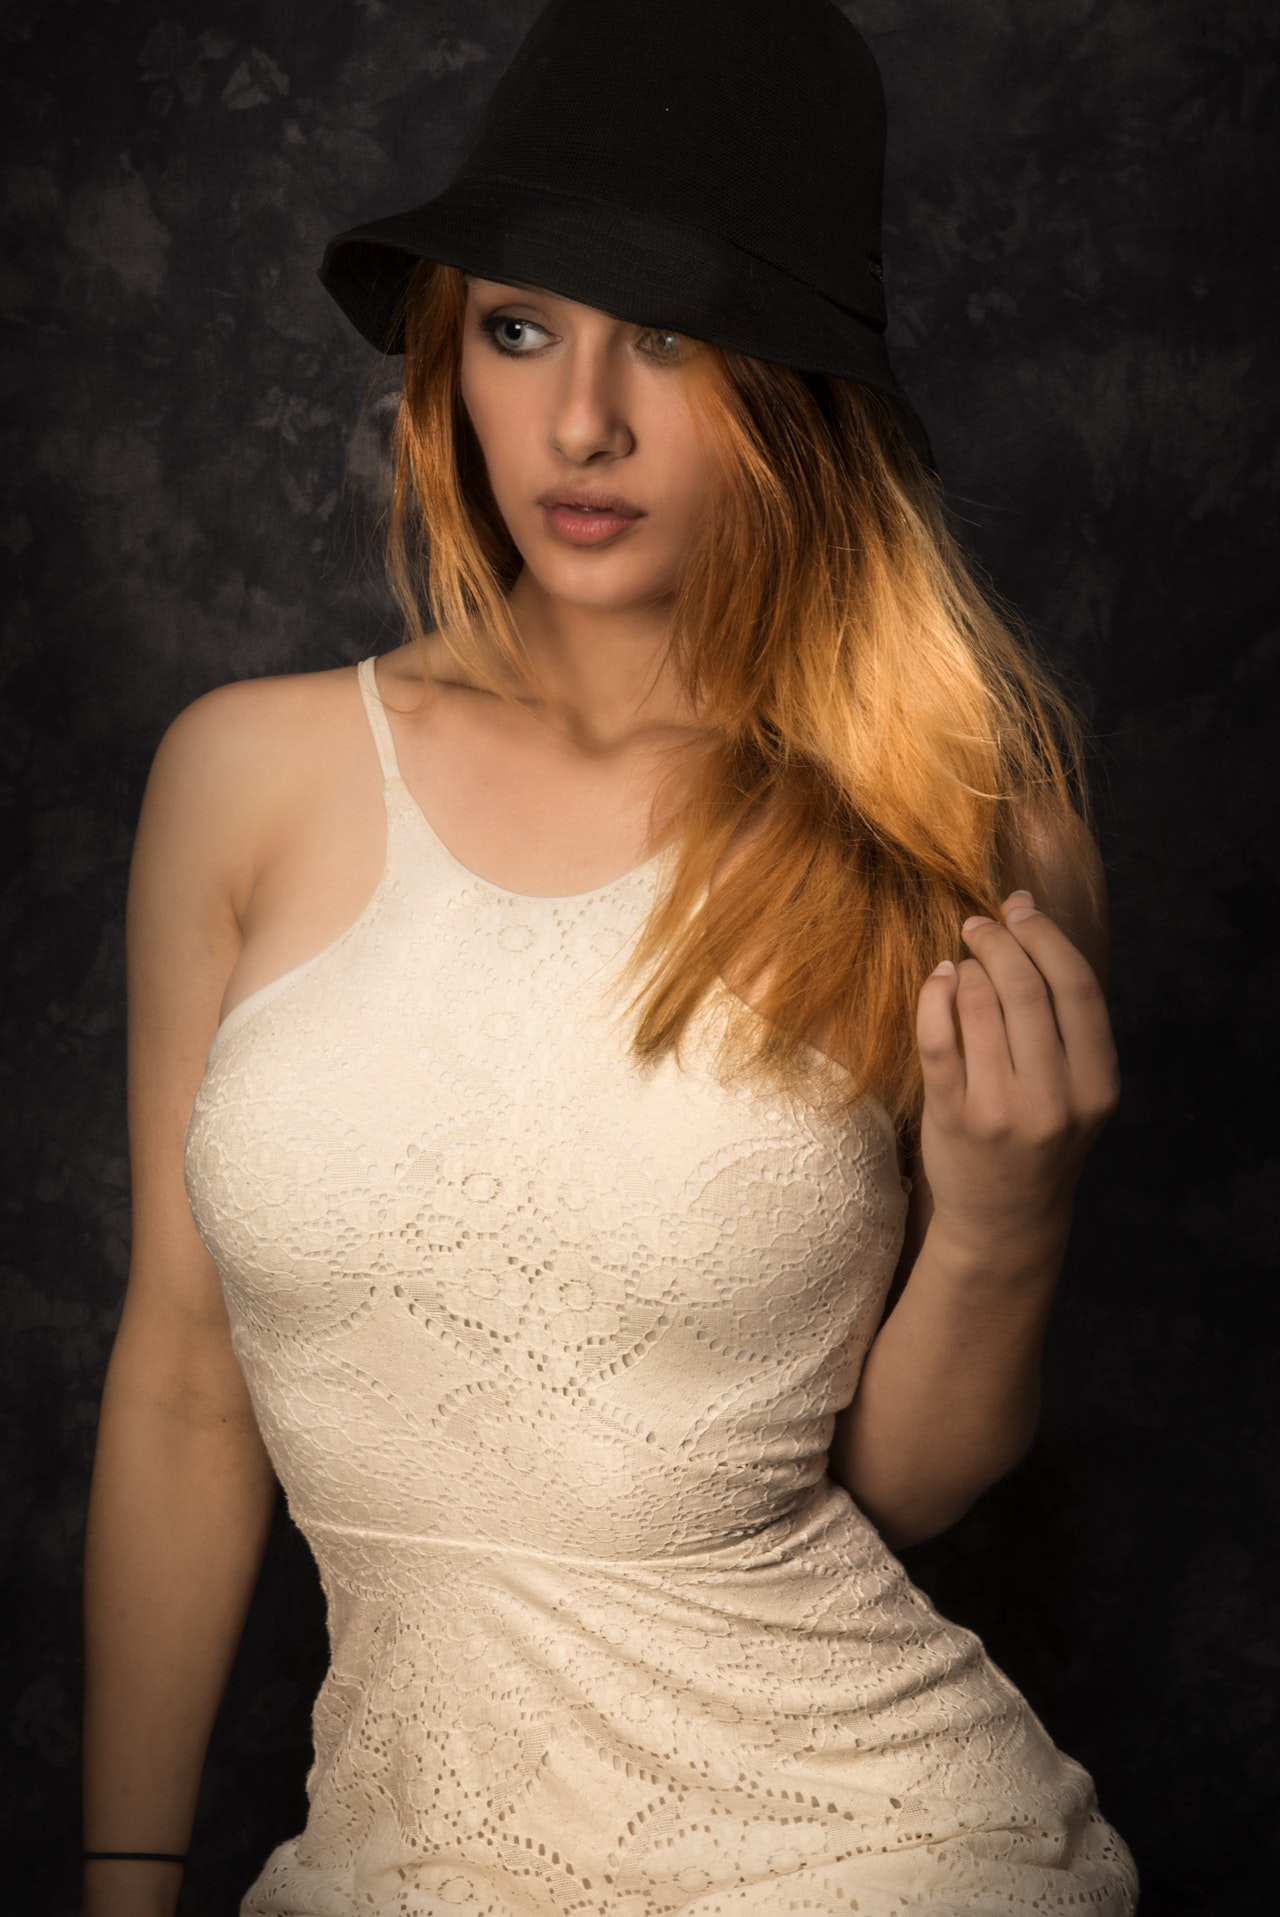 Hot lady with white dress and black hat